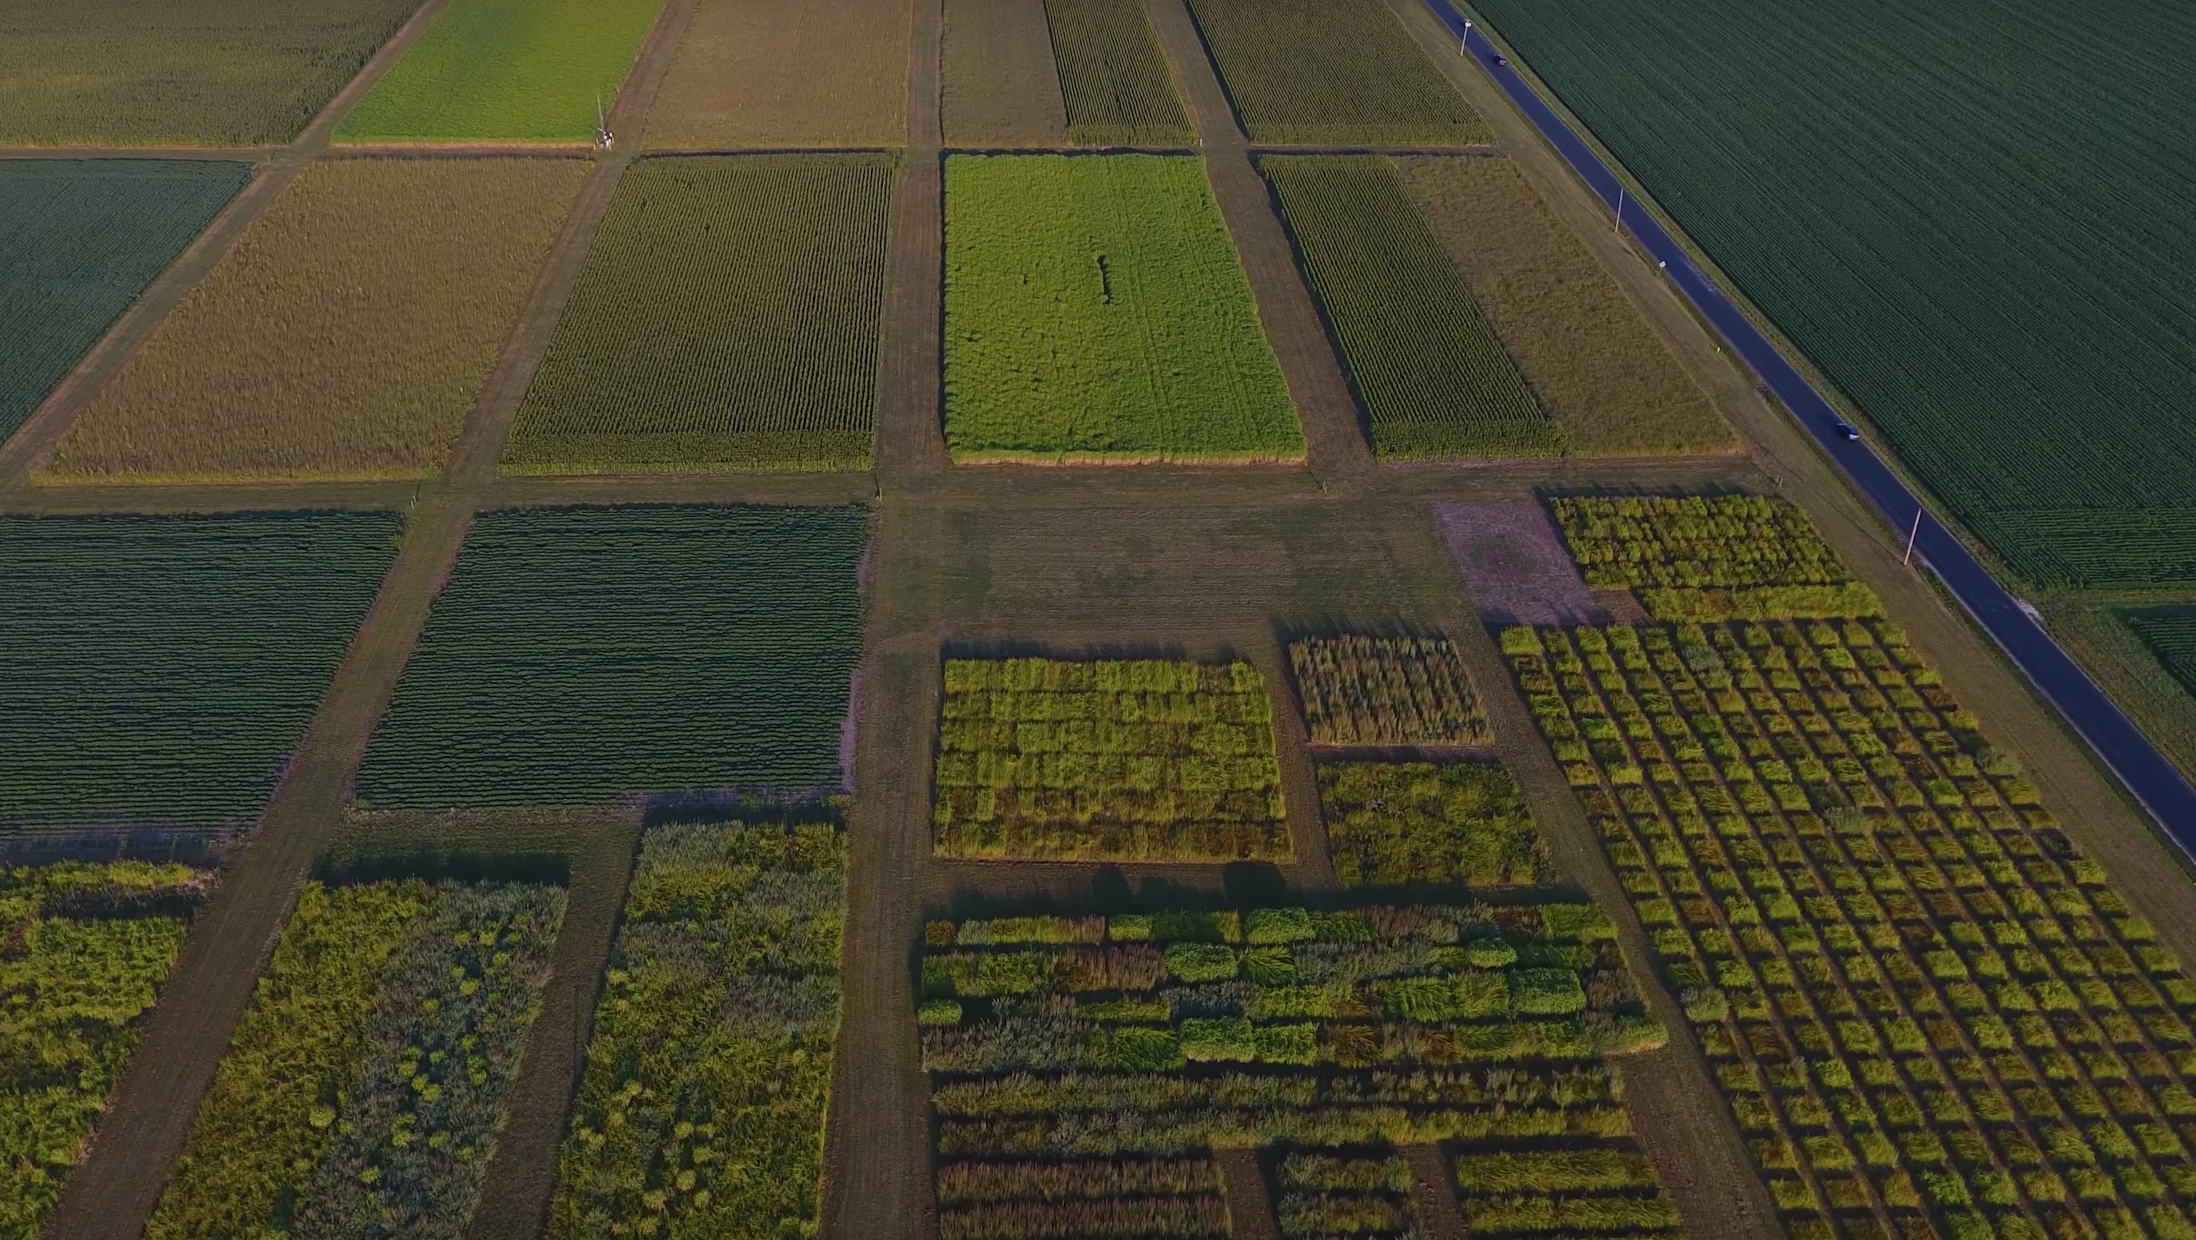 Arable farms already apply crushed rock in the form of limestone to reverse acidification of soils caused by farming practices, including the use of fertilizers. (Image: YouTube/Screenshot)